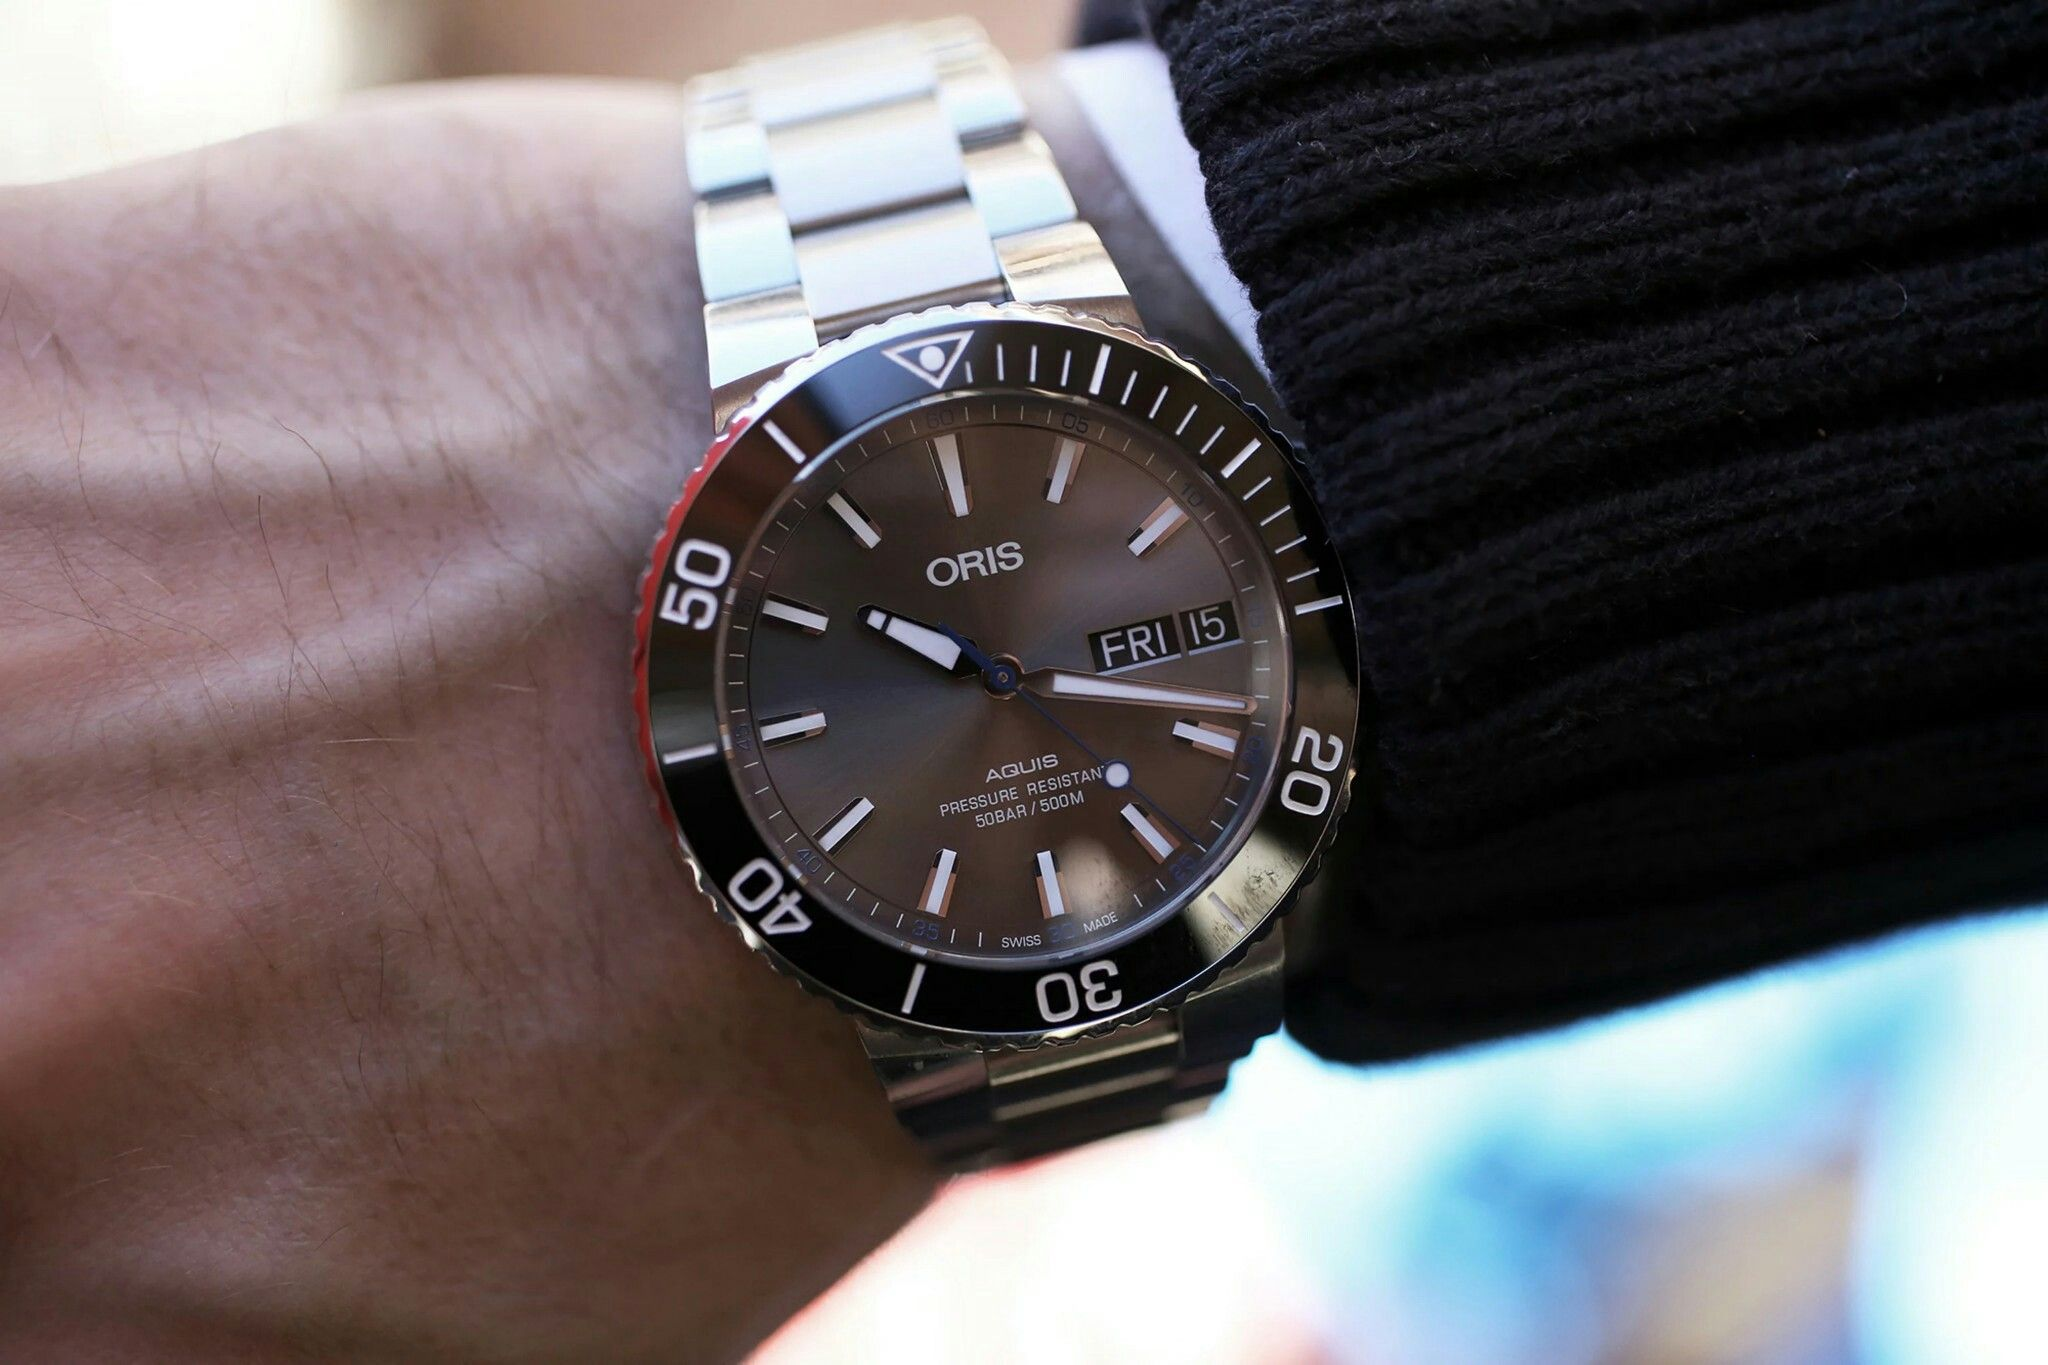 036379975ebe The Oris Aquis Hammerhead Limited Edition Diver   Timekeepers